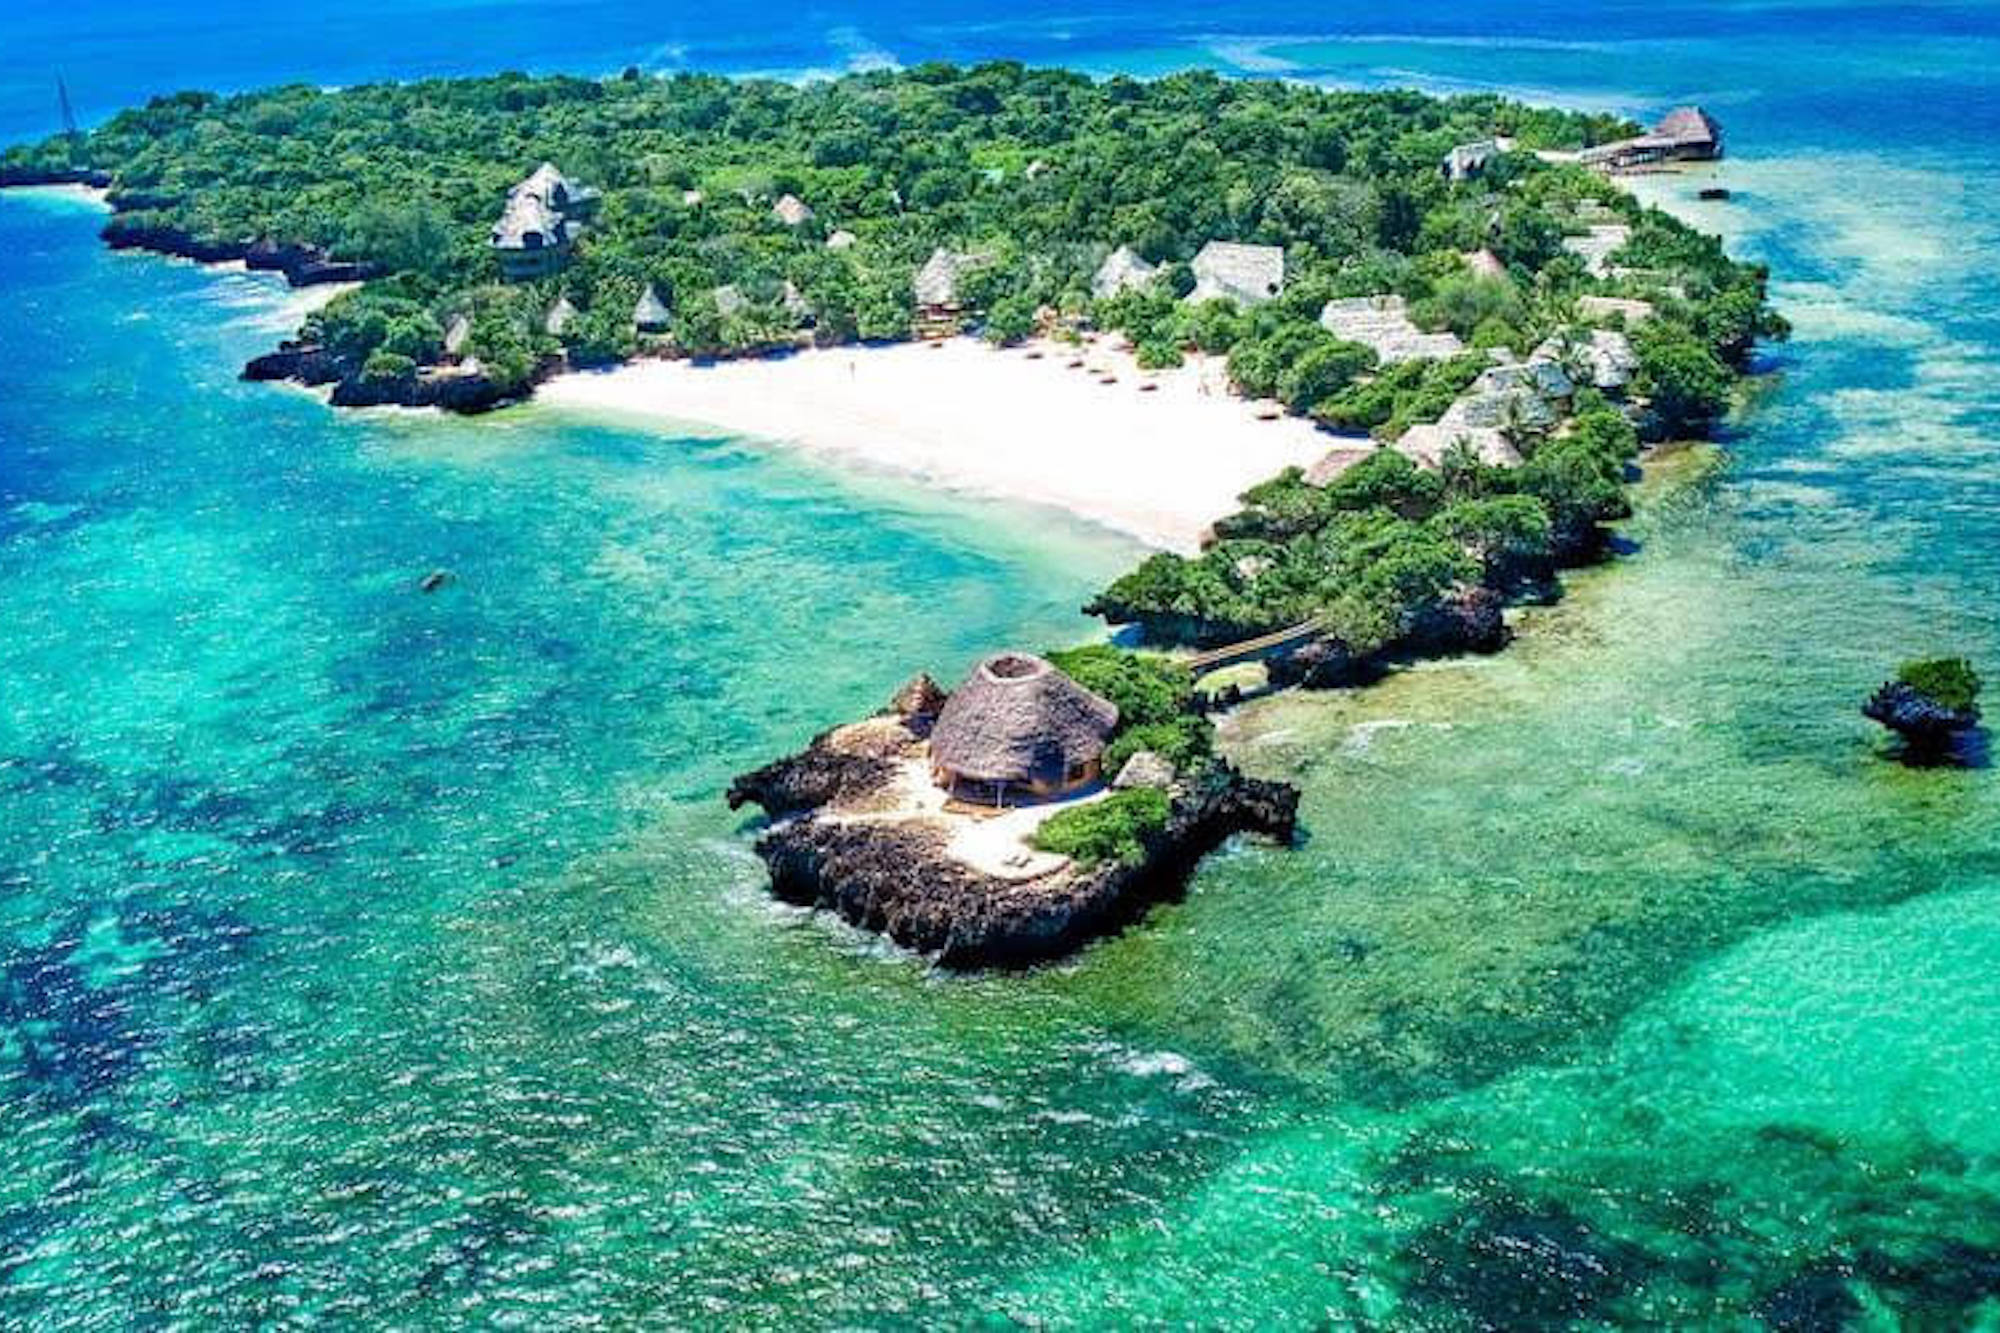 The Sands at Chale Island From Above